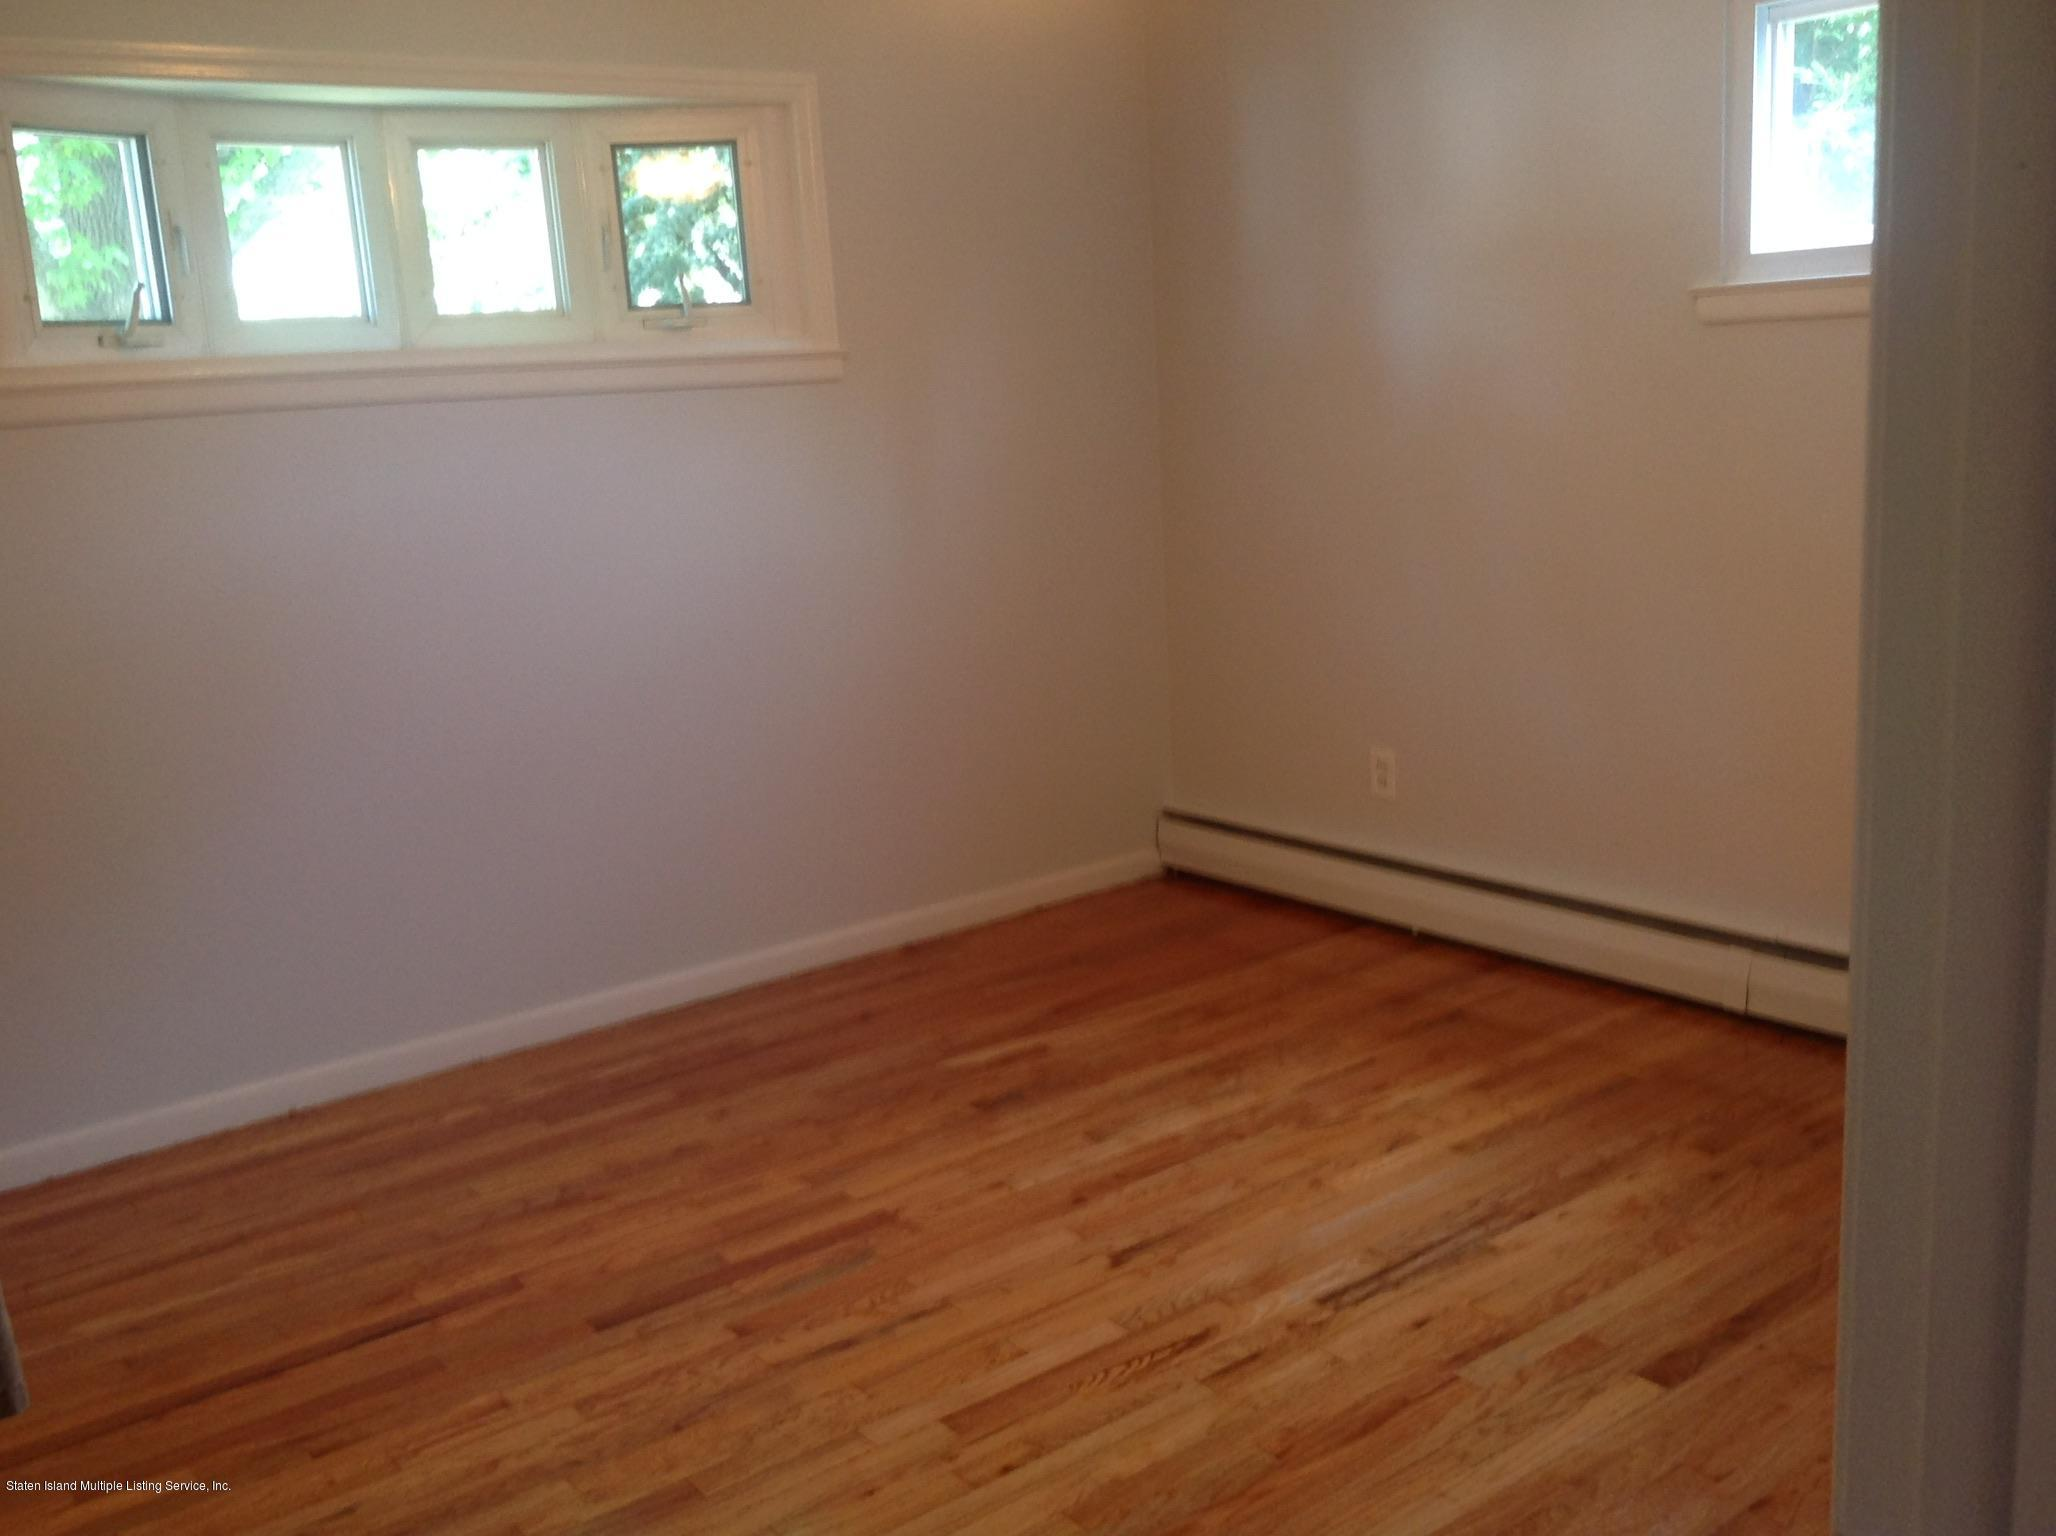 Single Family - Detached 28 Queen Street  Staten Island, NY 10314, MLS-1148779-18